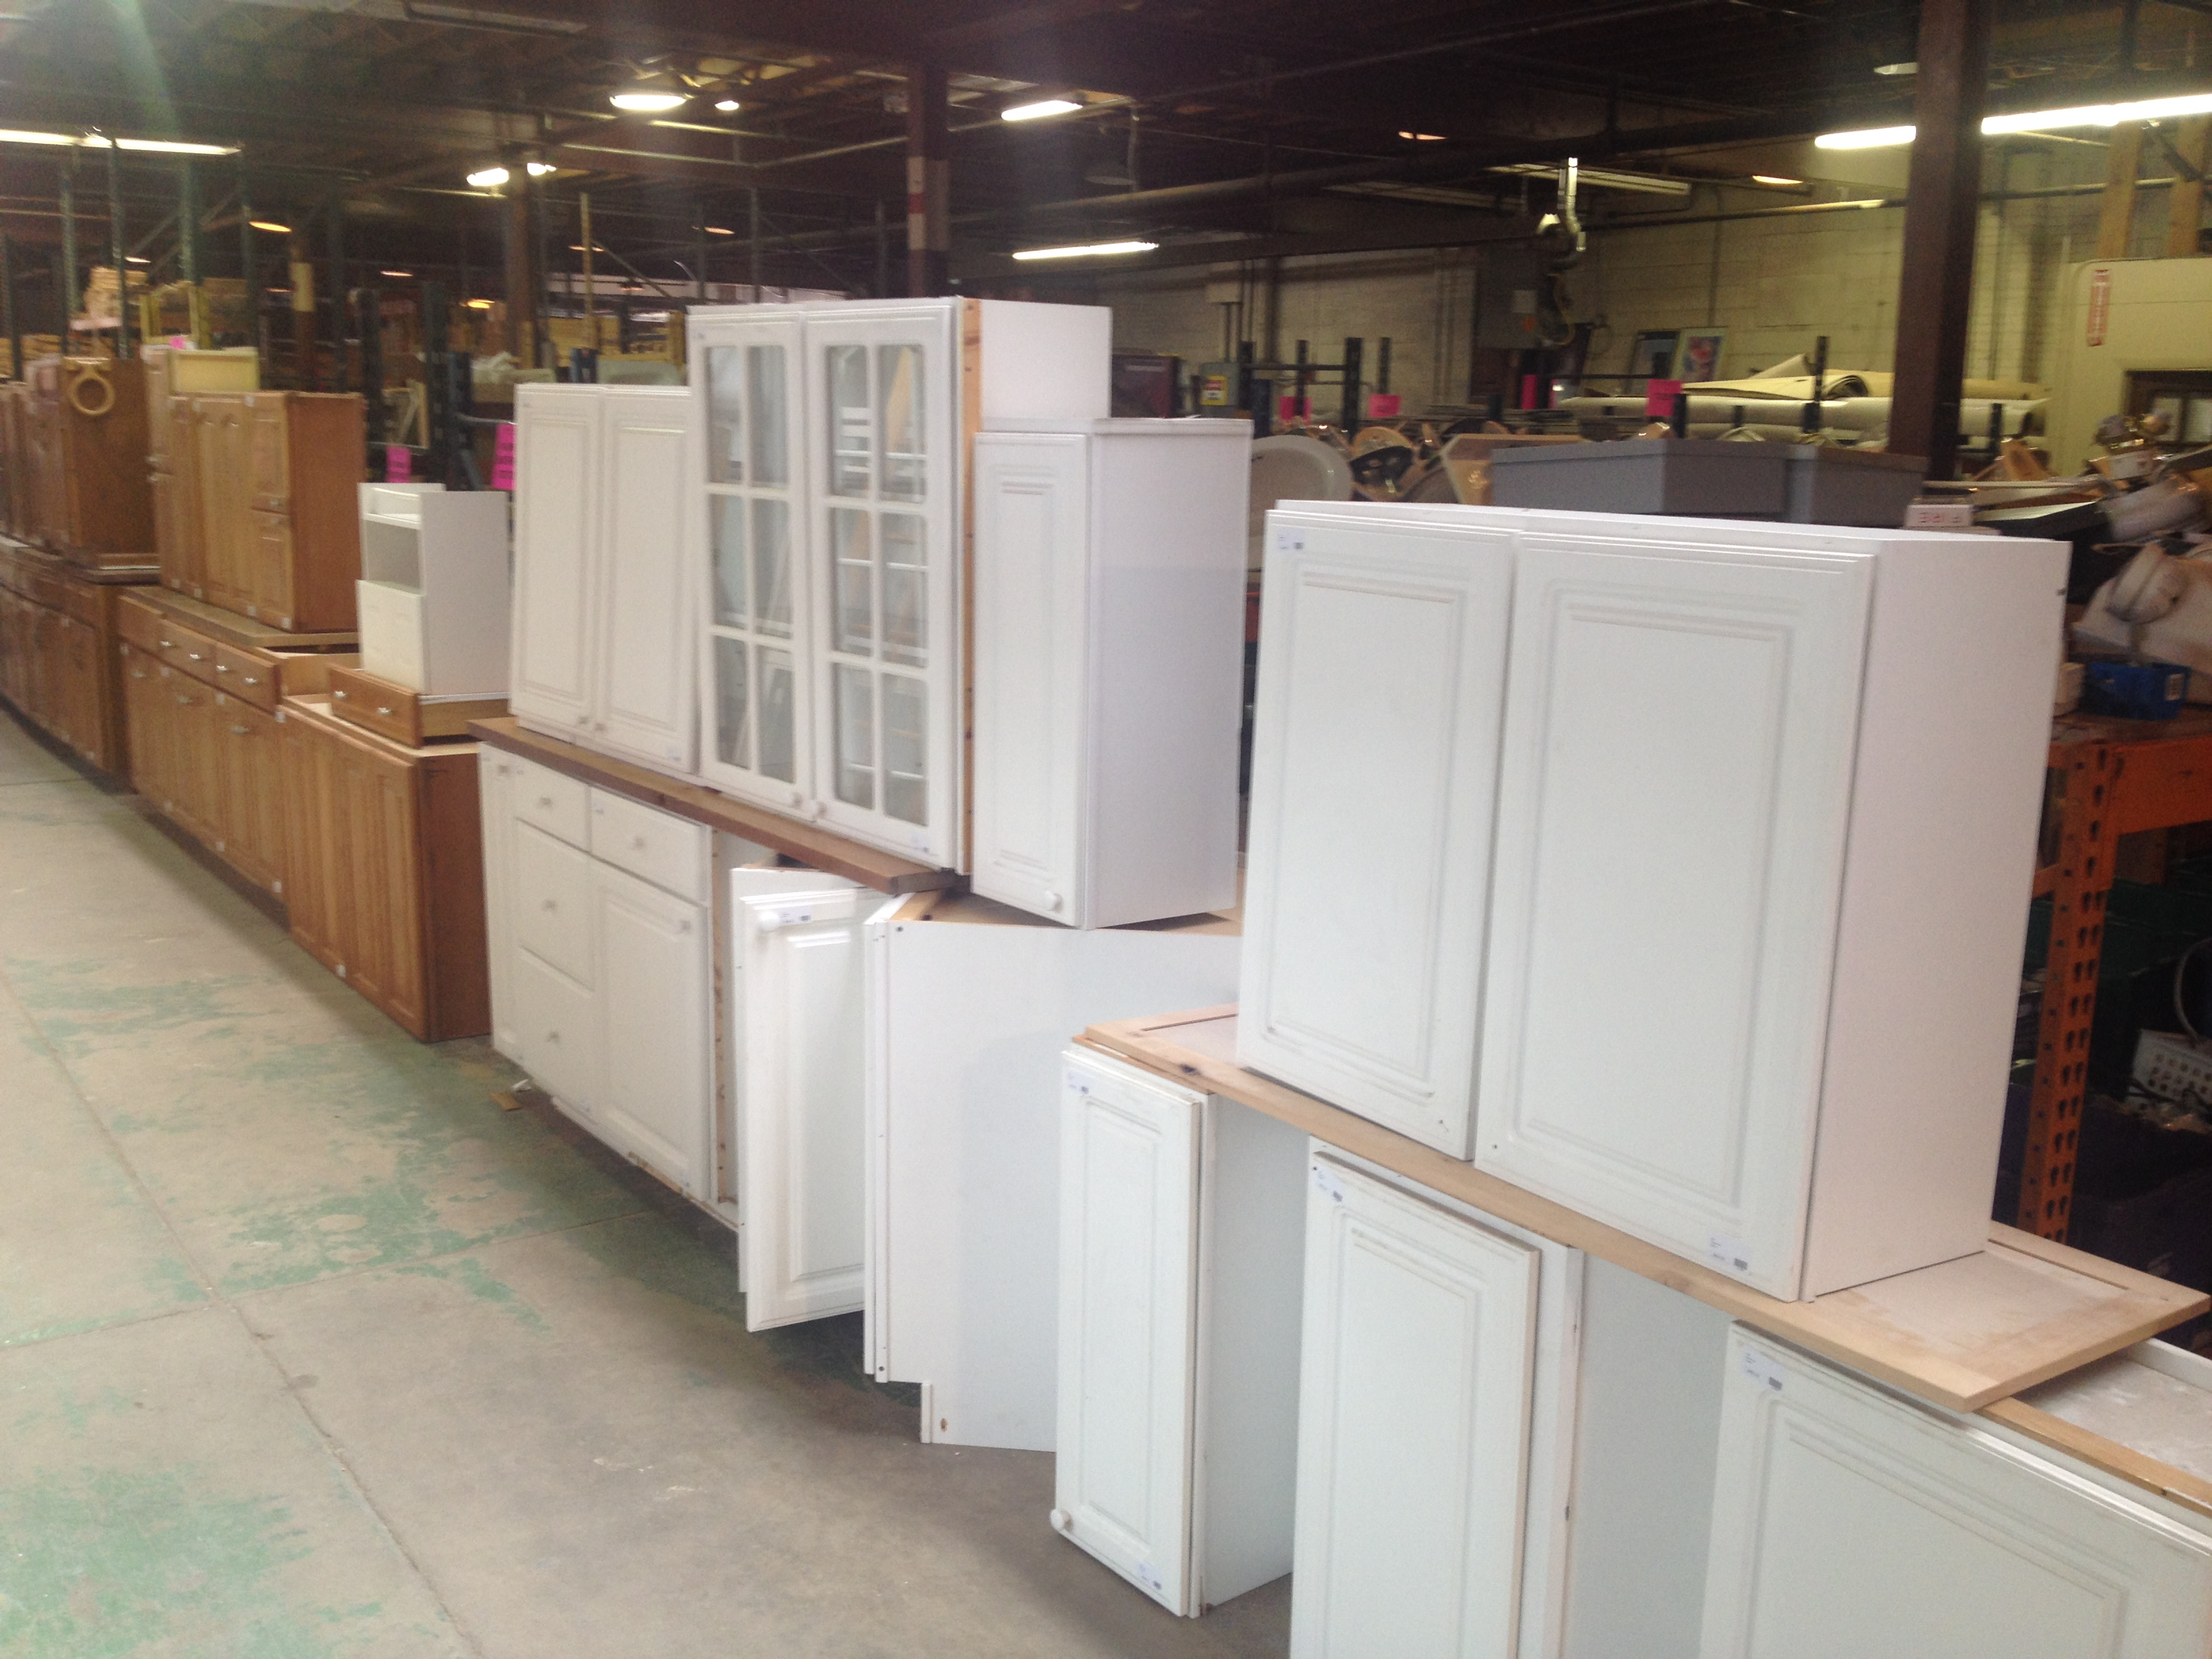 2 kitchen cabinets for sale Cabs